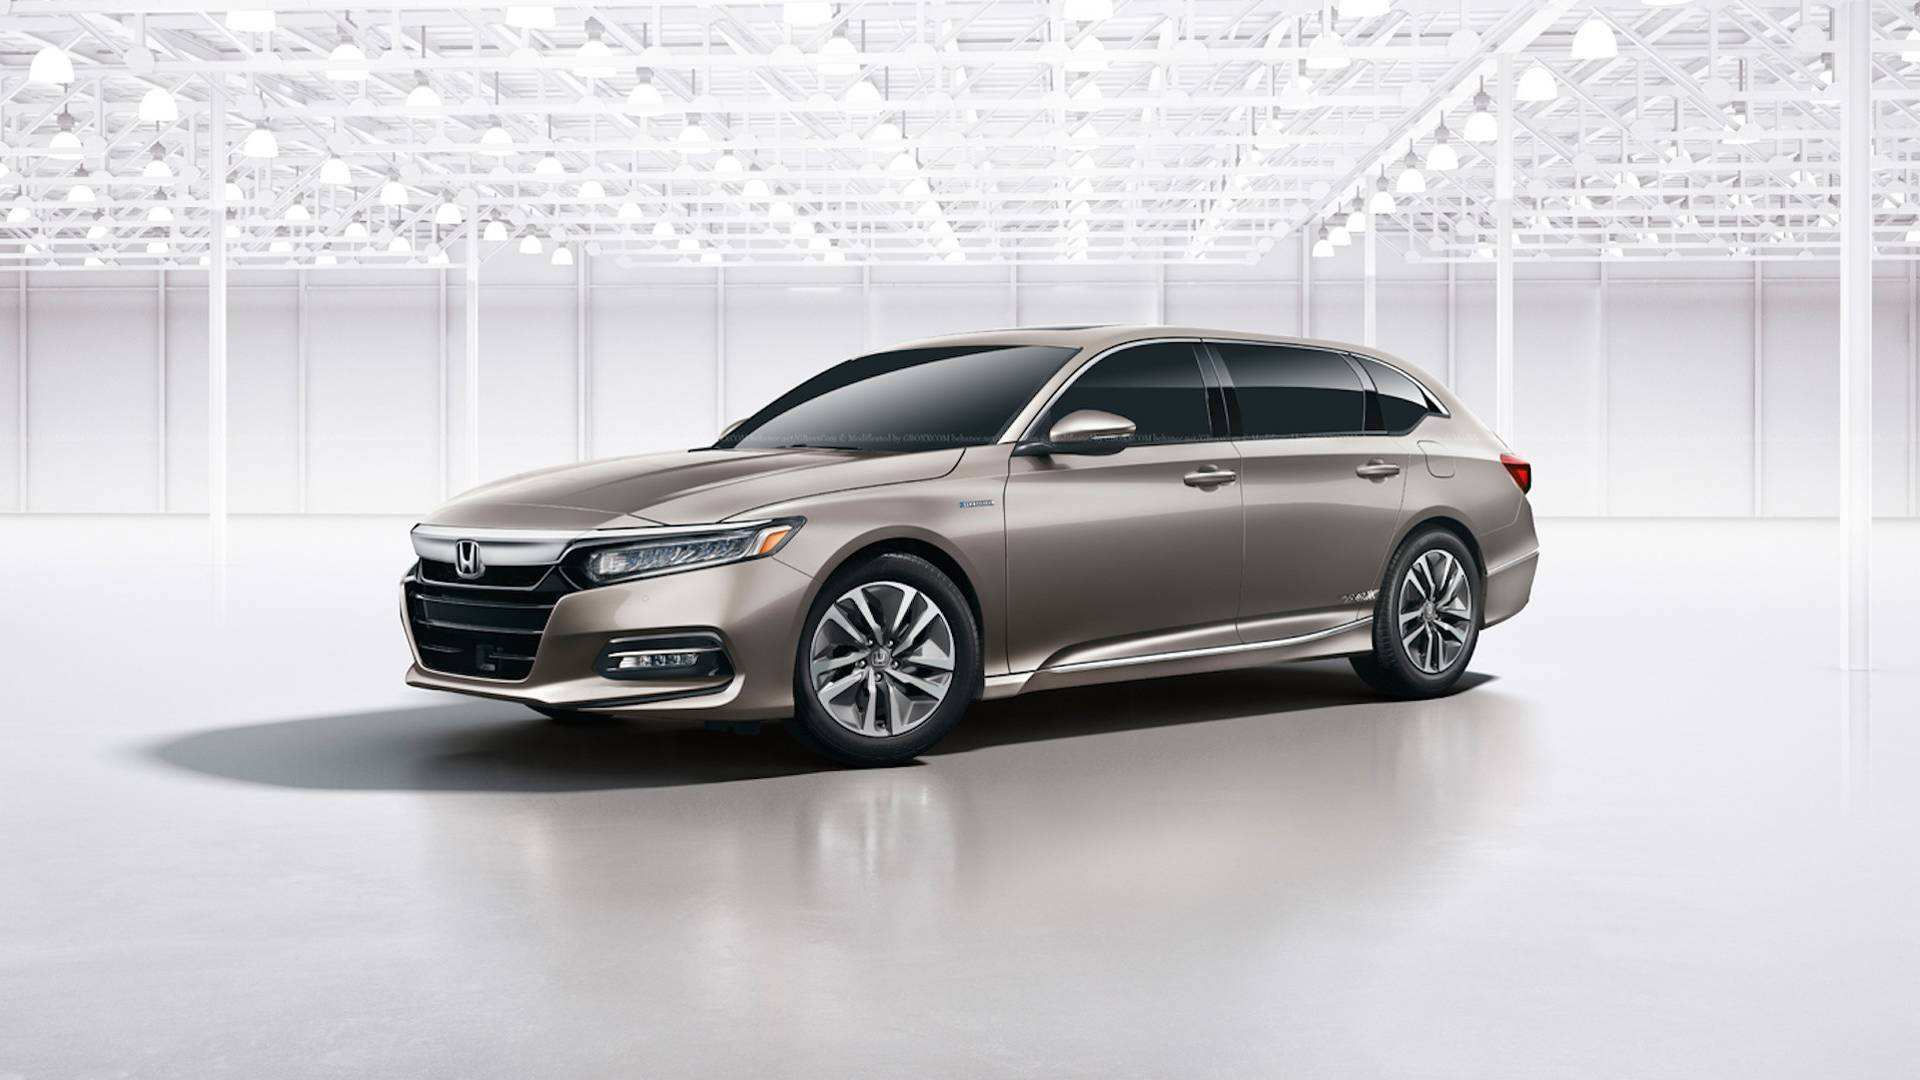 58 New Honda Wagon 2020 Specs And Review